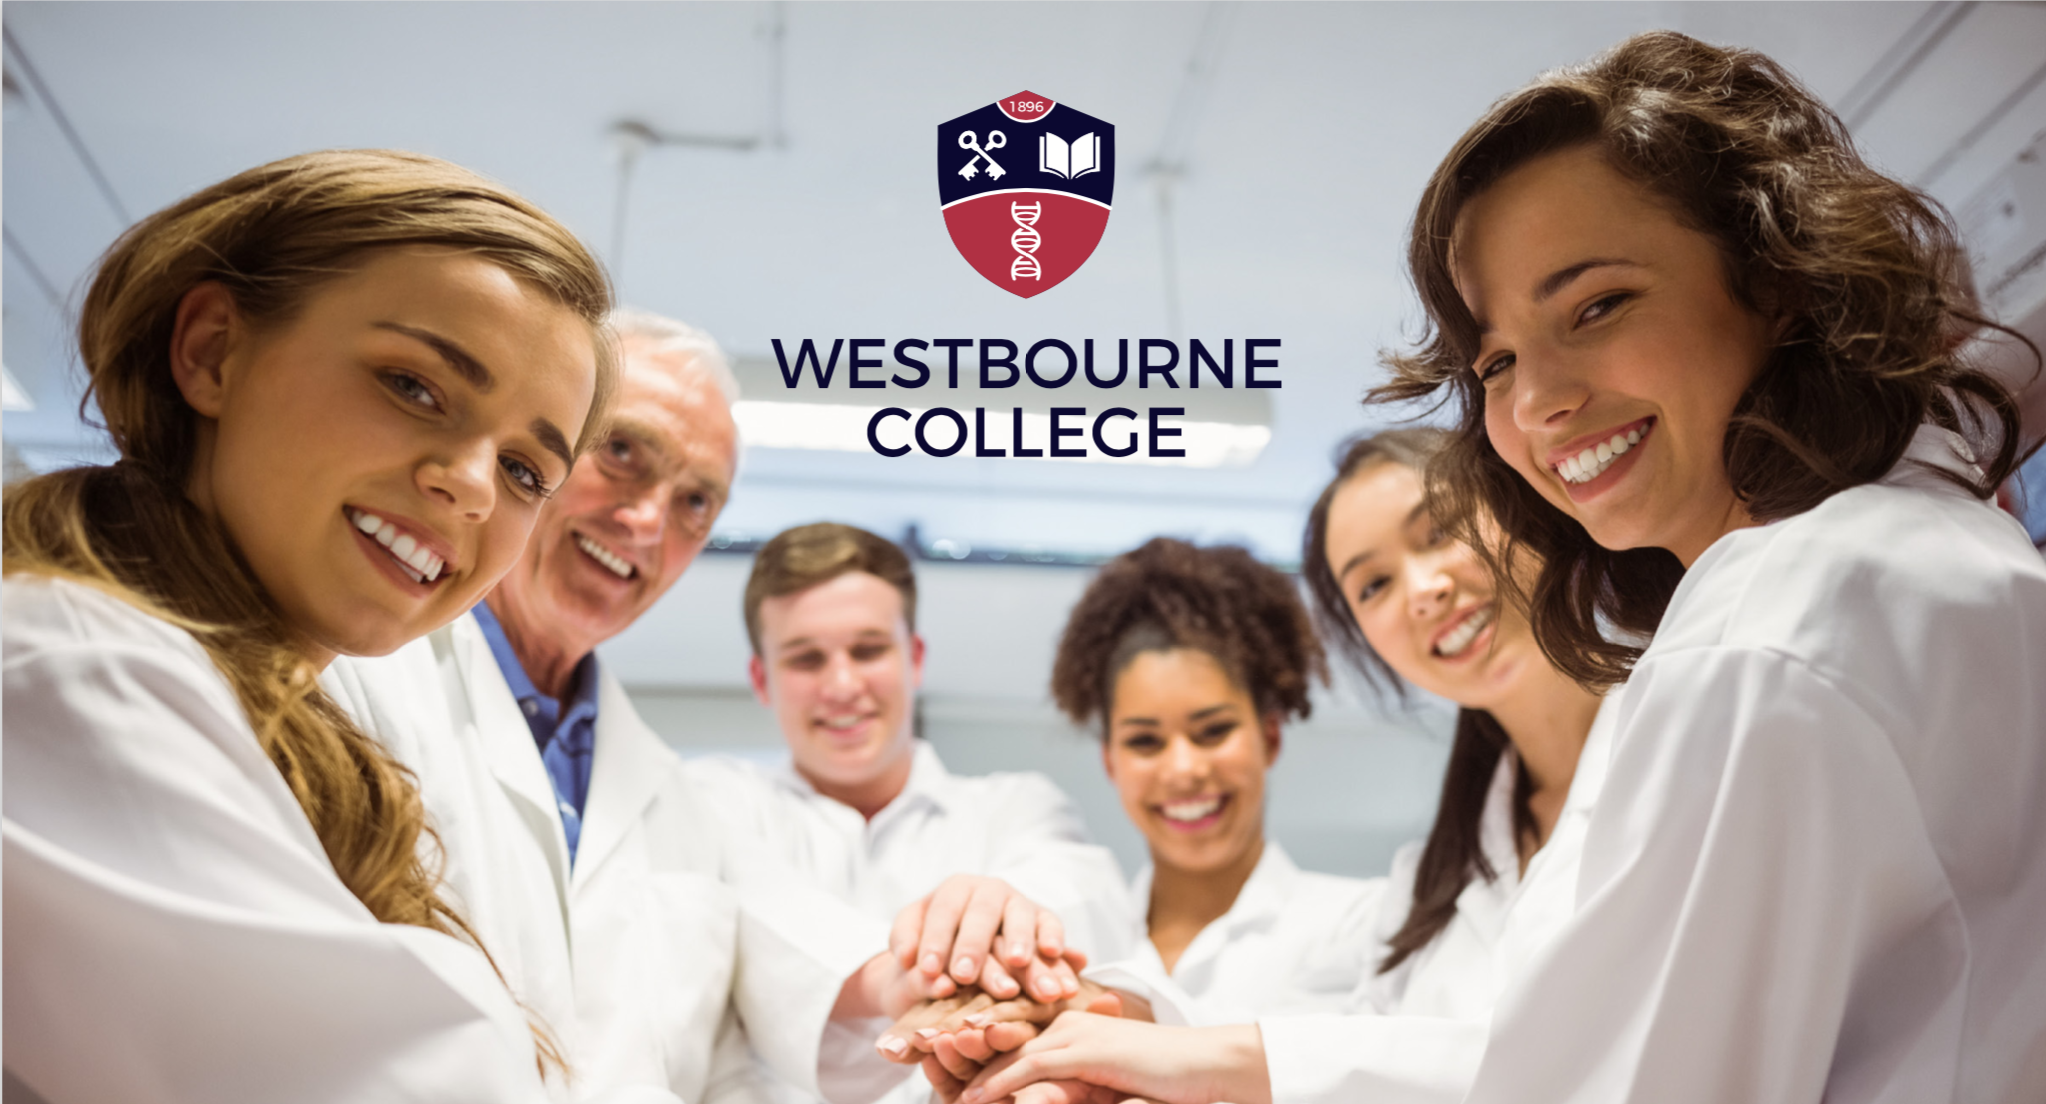 https://assets.ibaustralasia.org/article/92/WESTBOURNE_COLLEGE_SYDNEY.png